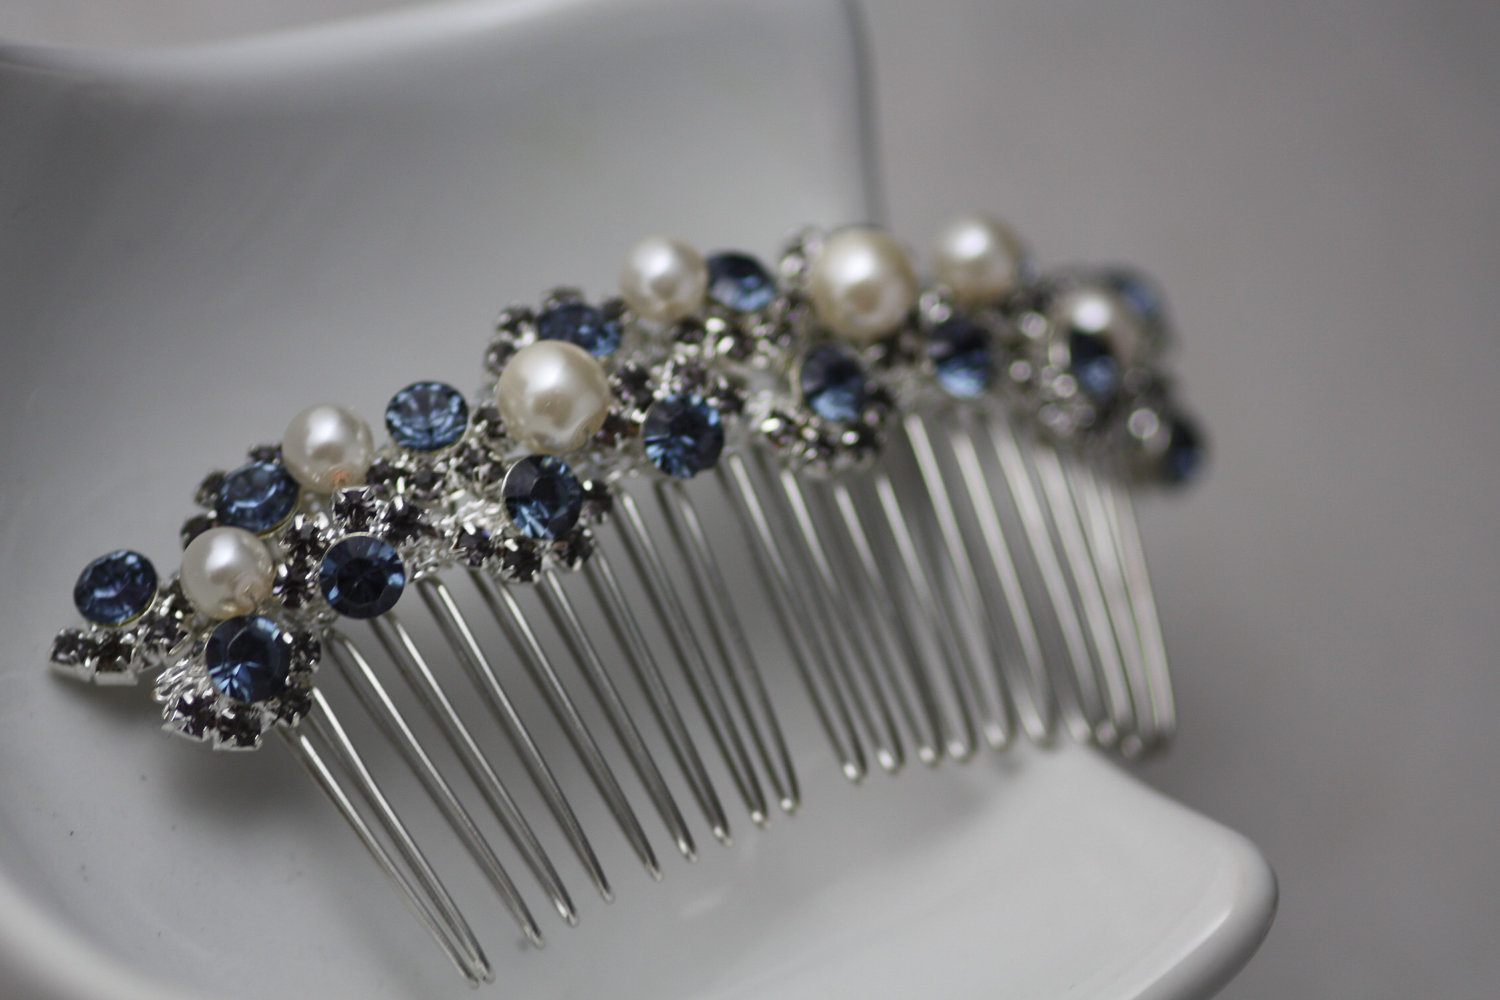 Swarovski saphire and black diamond crystal and pearl bridal hair comb